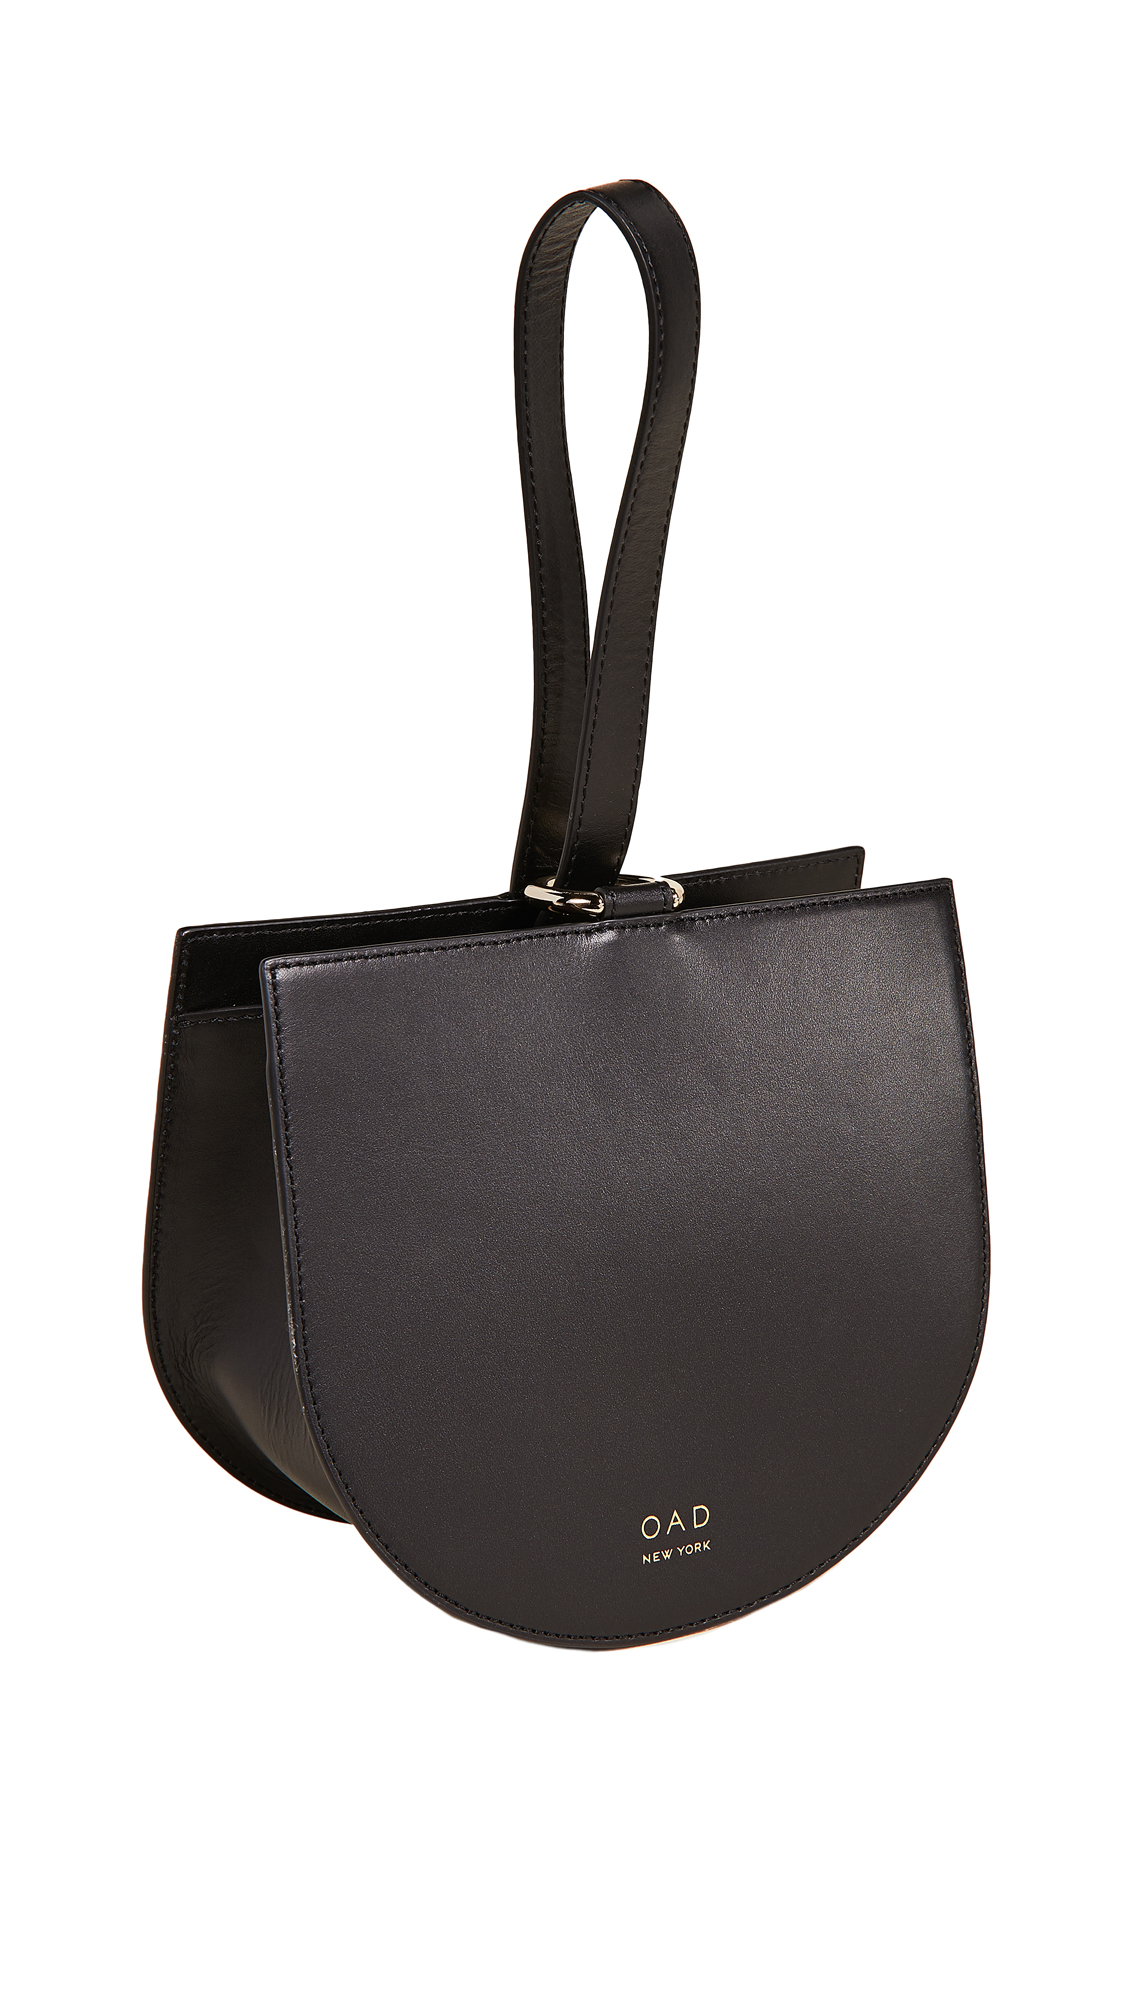 OAD Dome Wristlet Bag in Black